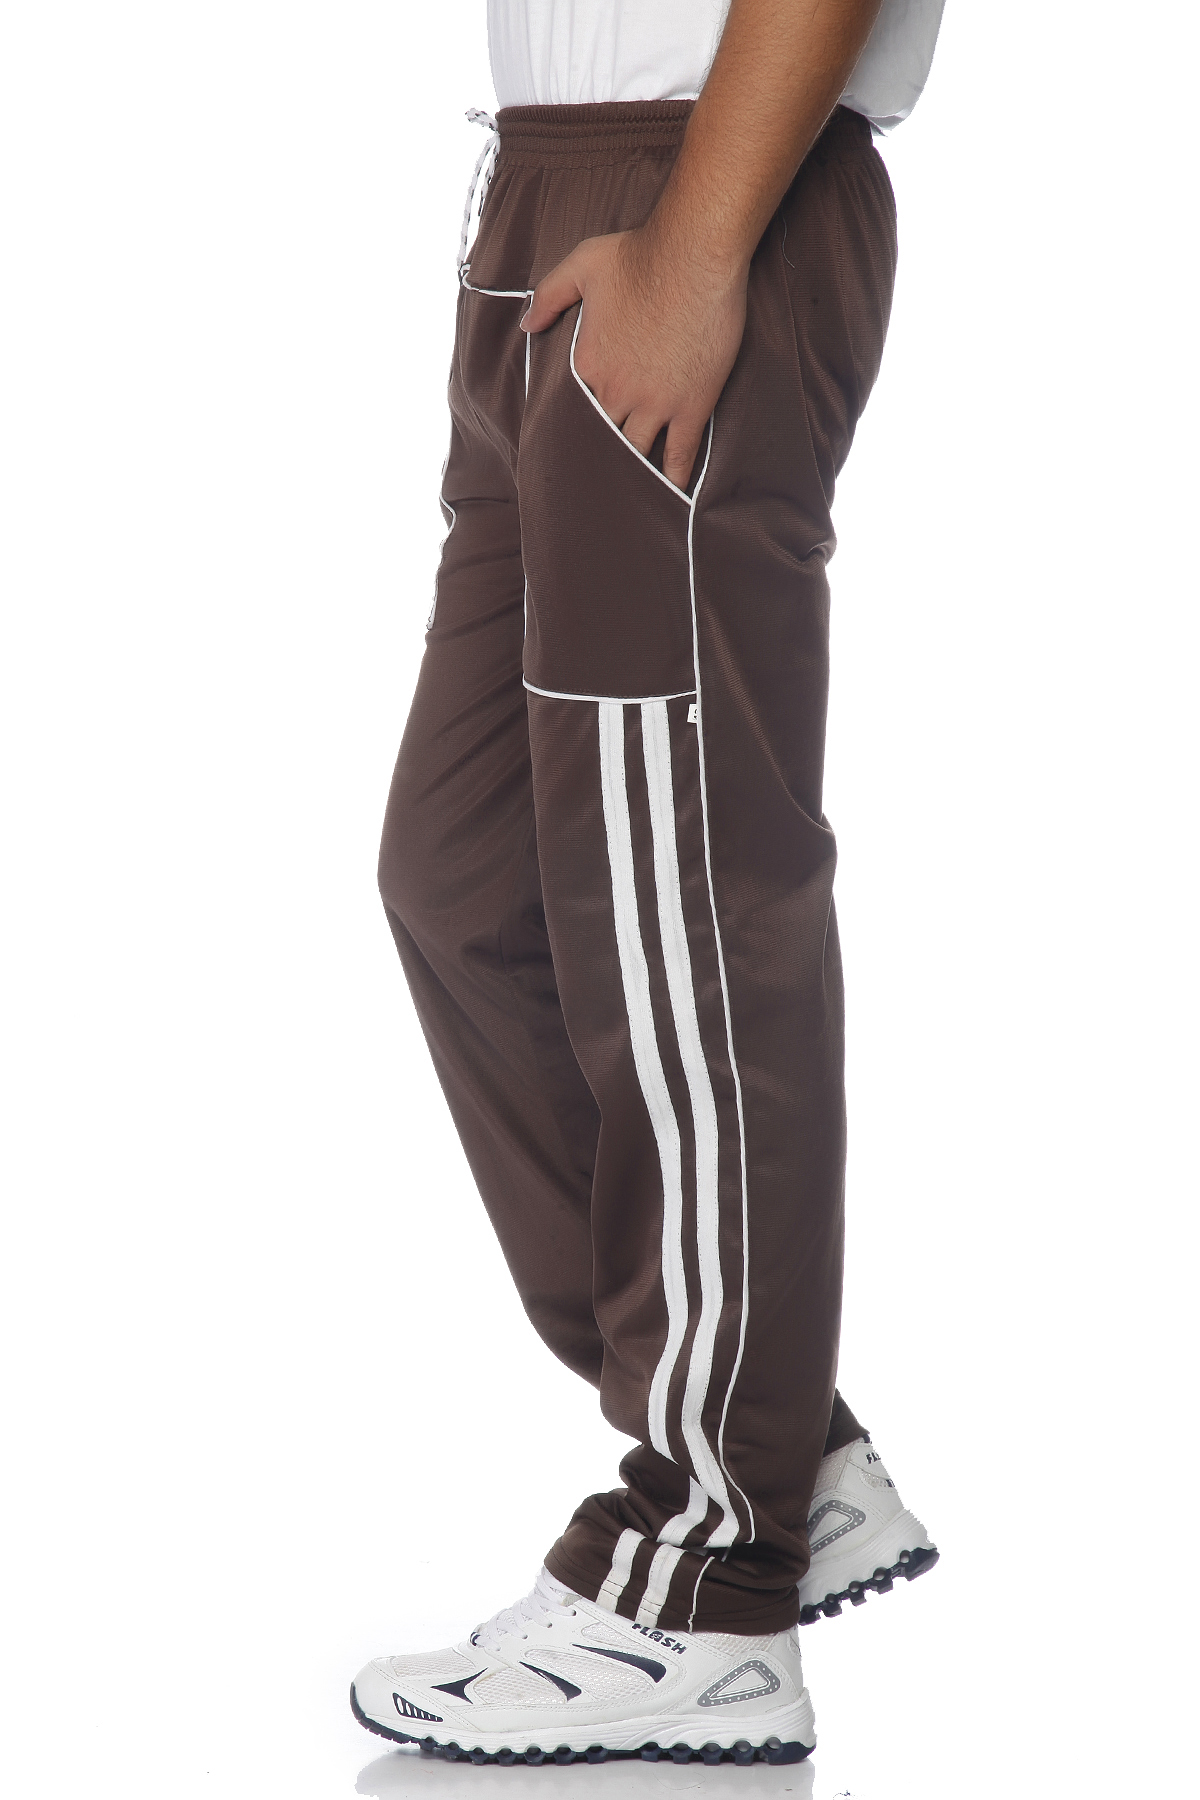 DS Brown and white Linning Running Sports Track pant